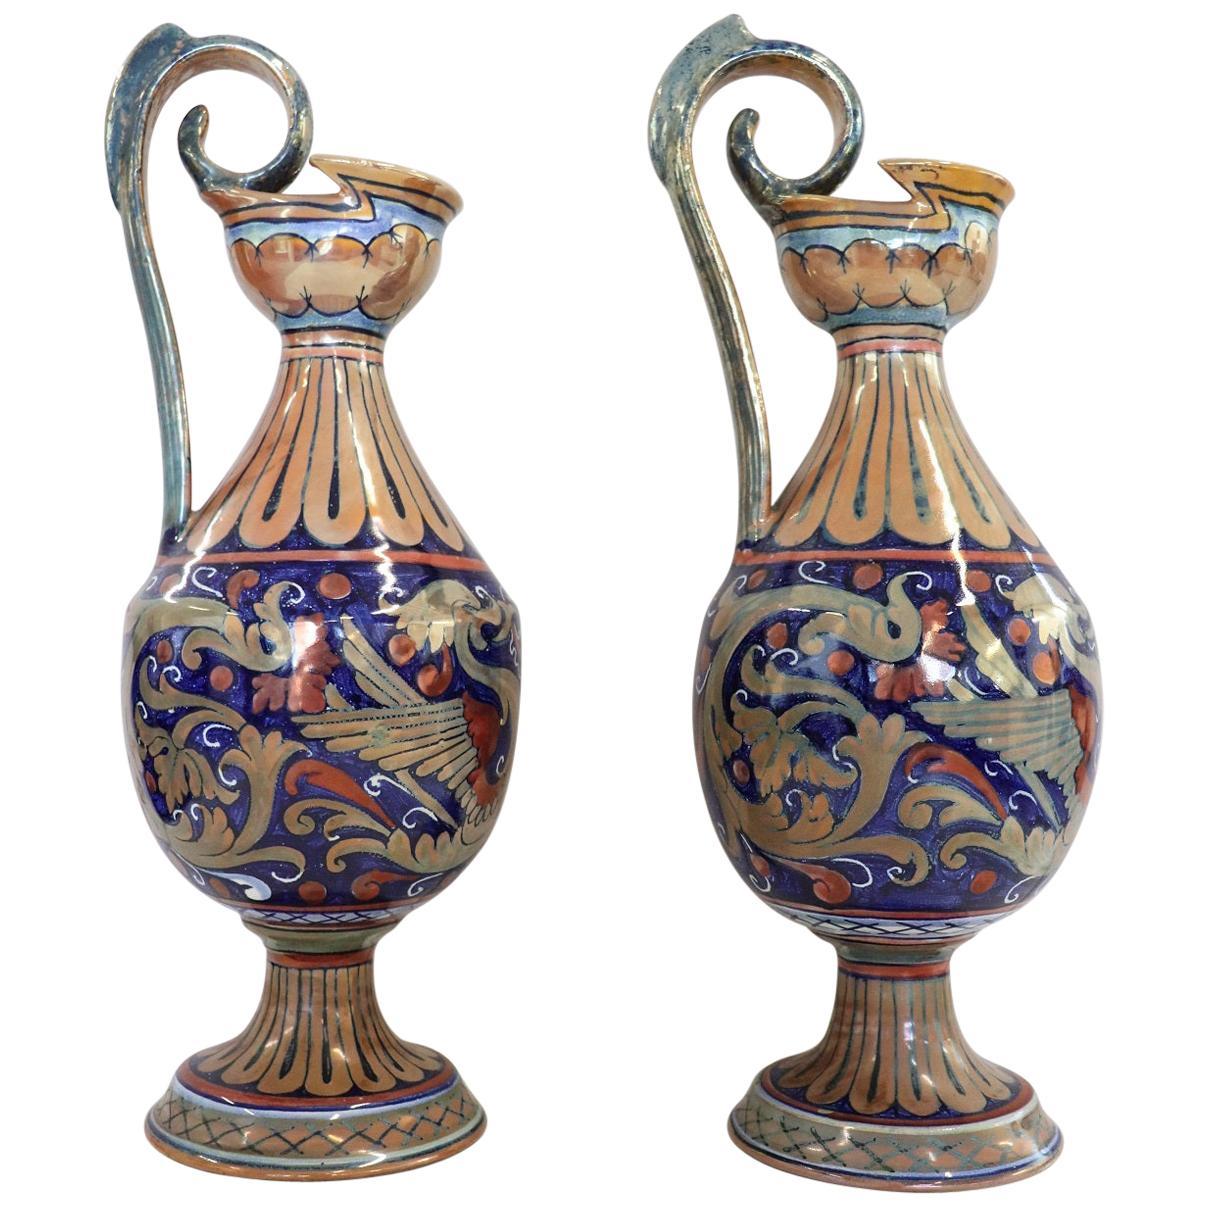 Pair of Majolica Vases with Blue Decorations by Gualdo Tadino, 1920s